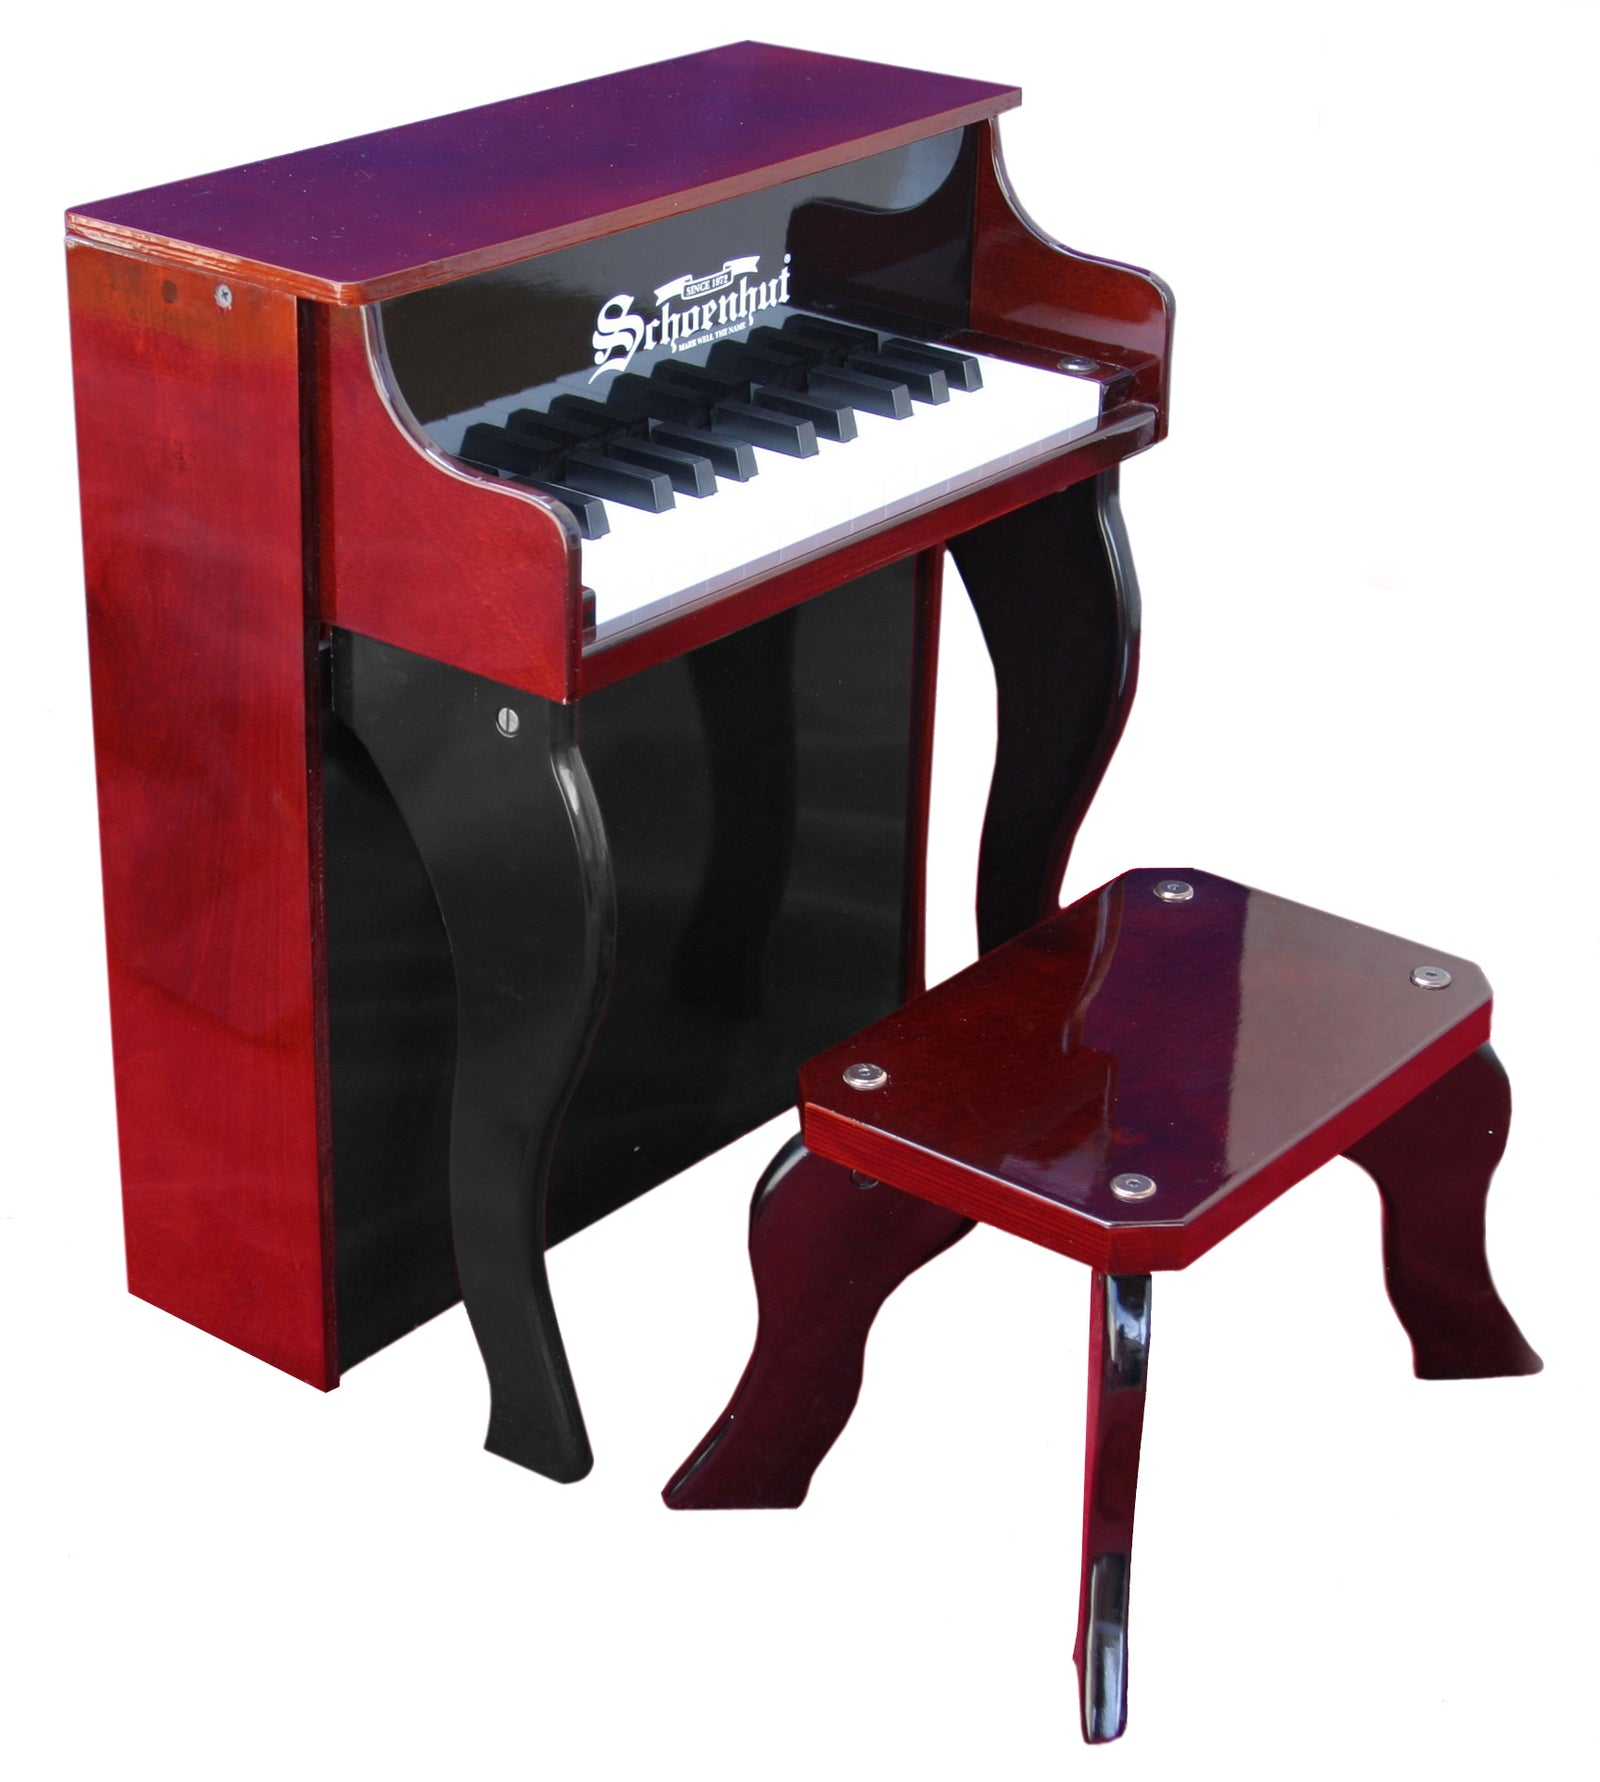 Schoenhut Elite Spinet Piano 25-Key Mahogany/Black